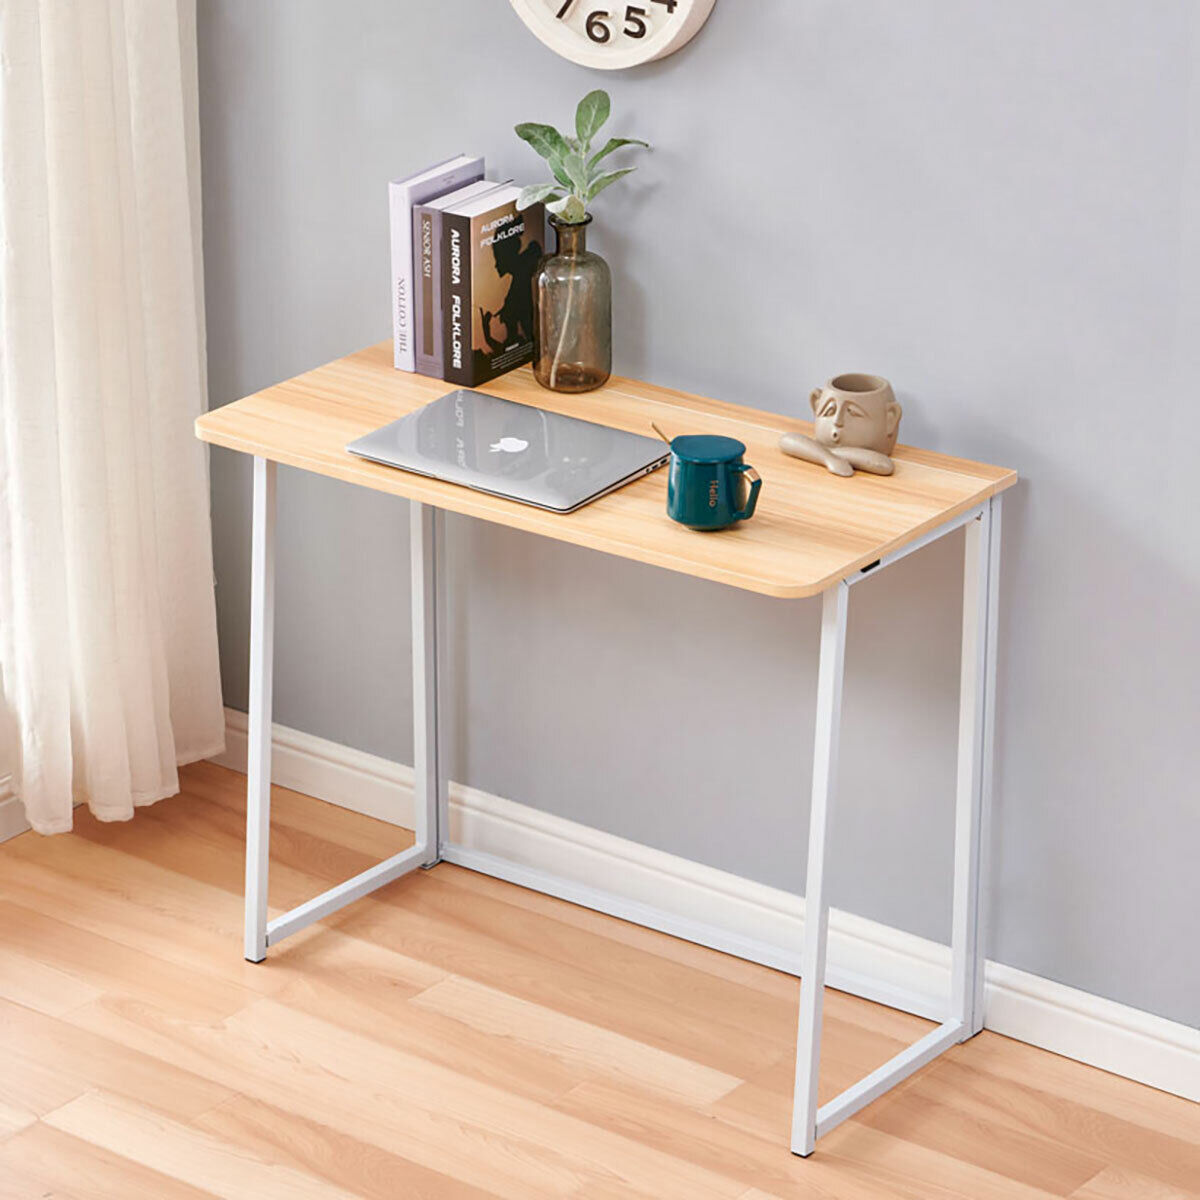 Details about Folding Computer Desk Corner Laptop Writing Table Study  Workstation Office Desk